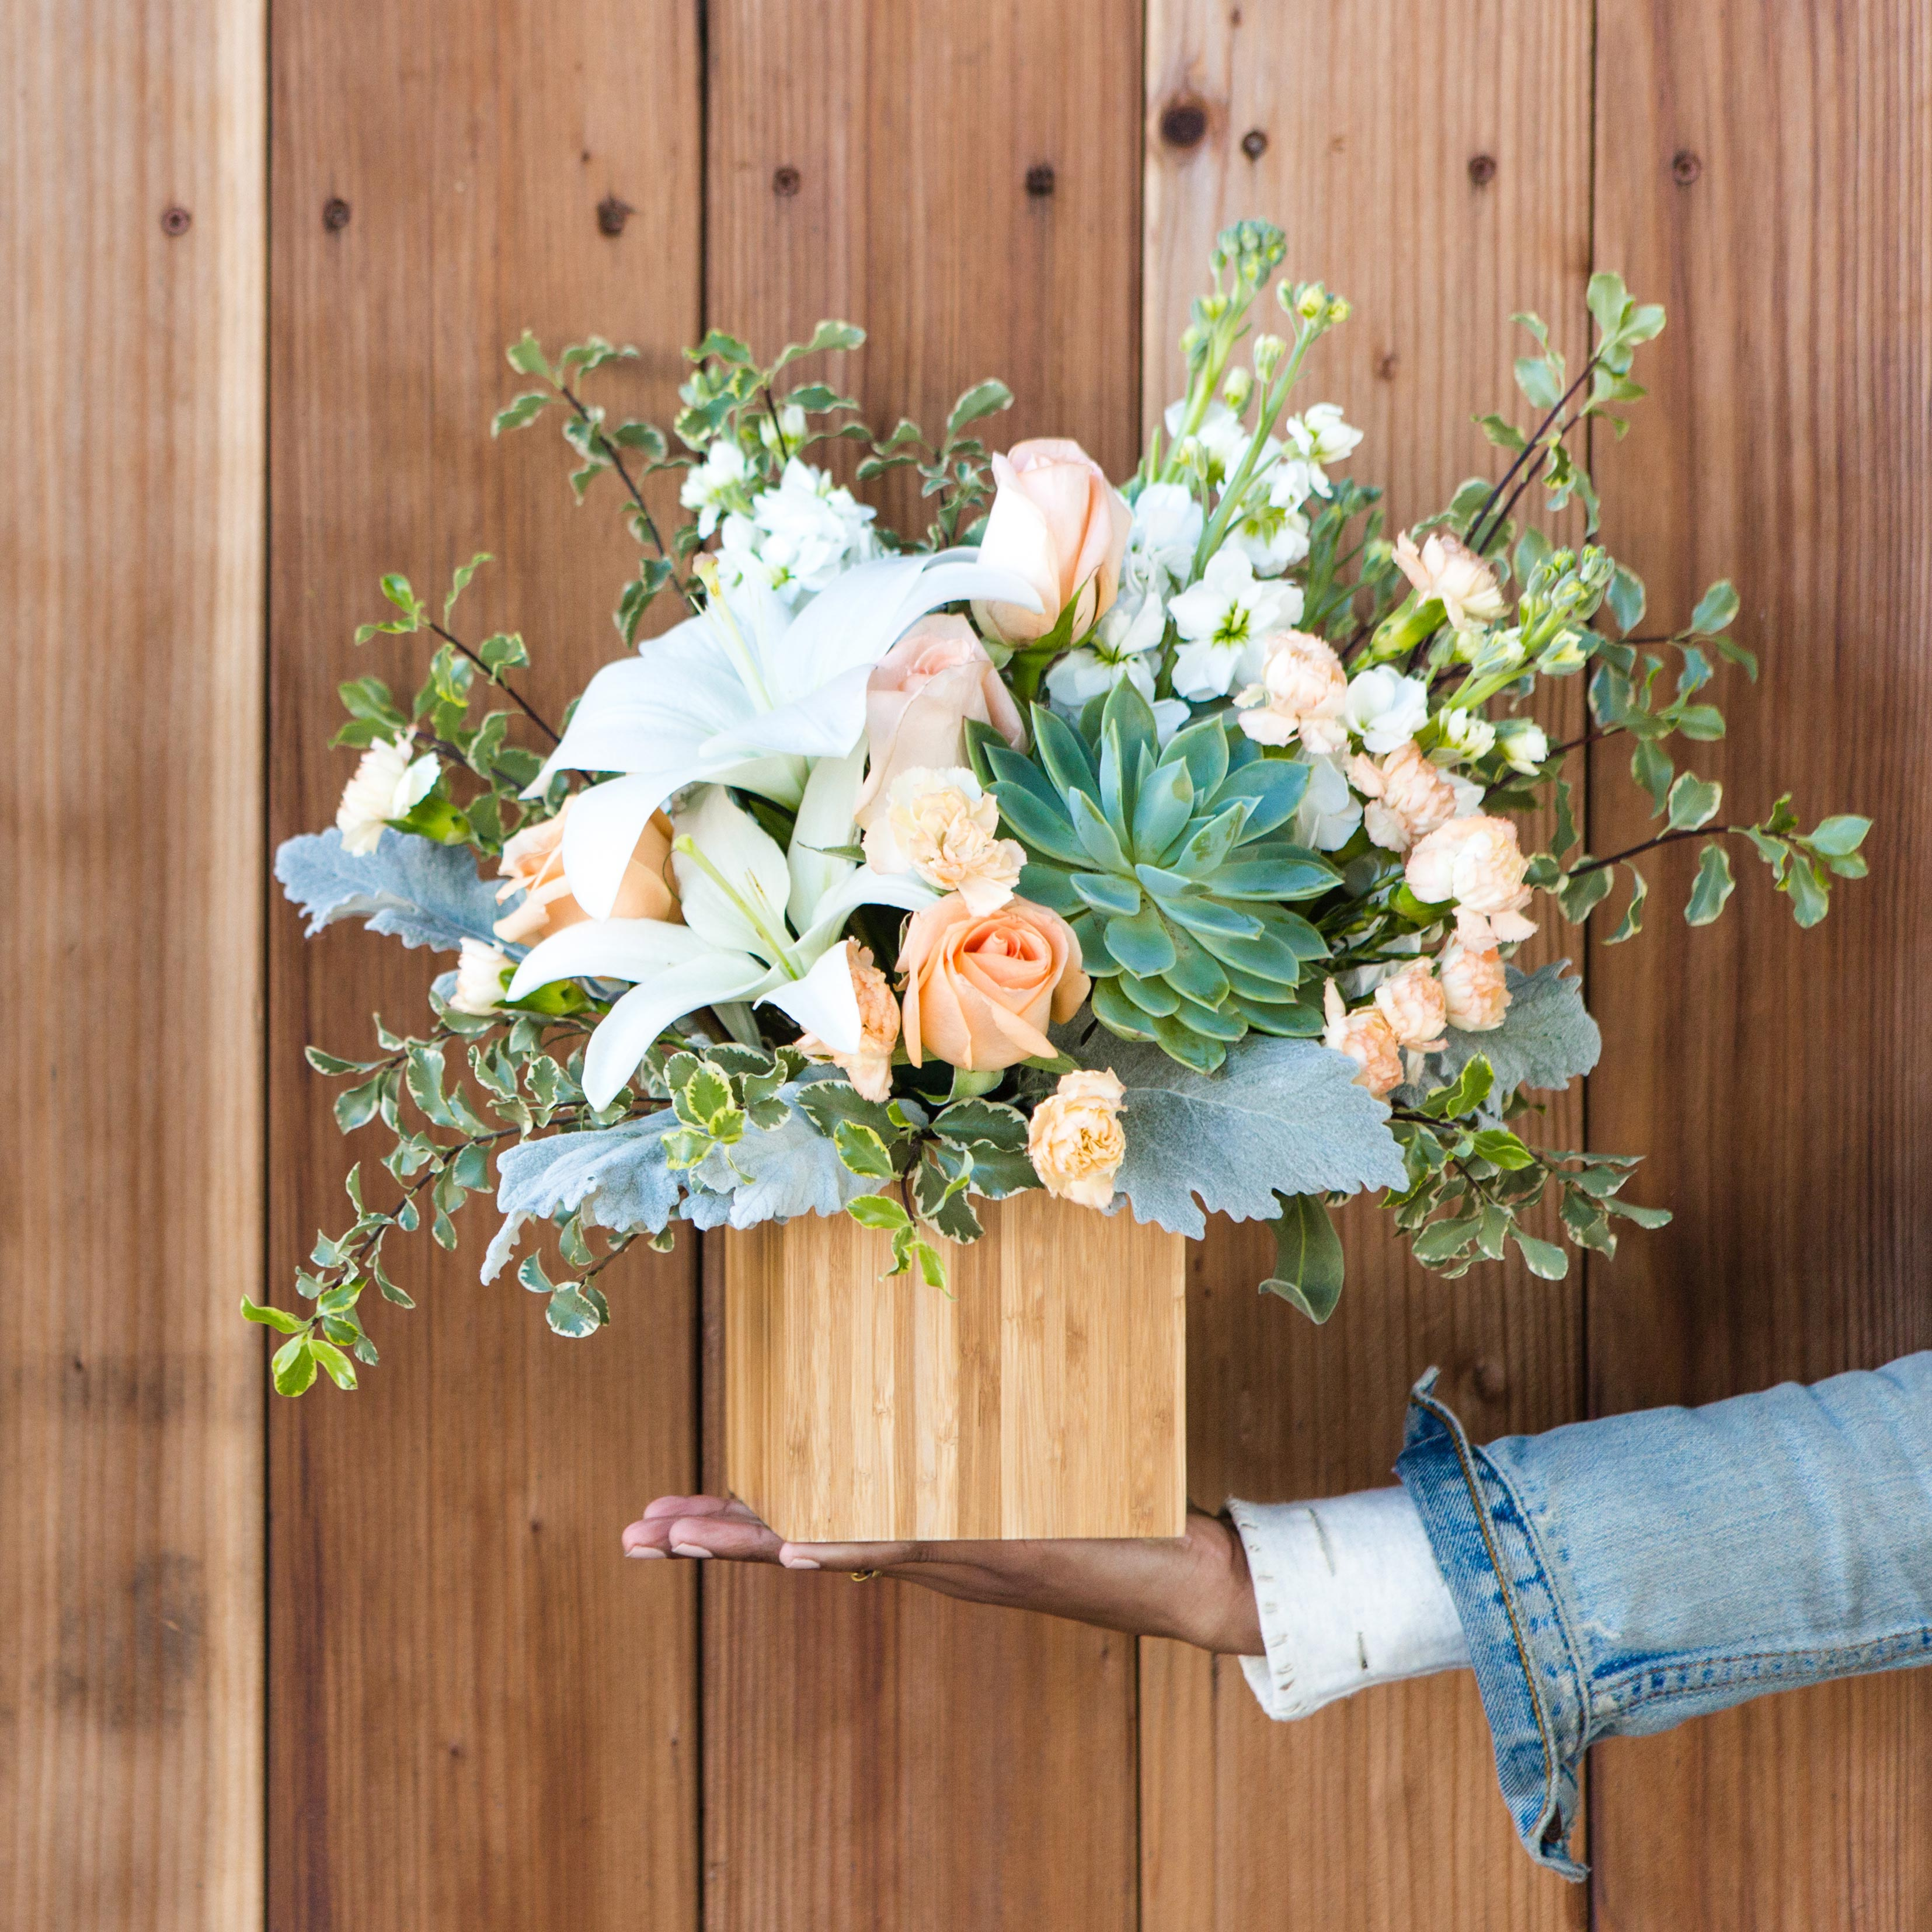 How to revive wilting in floral bouquets teleflora blog telefloras desert sunrise bouquet izmirmasajfo